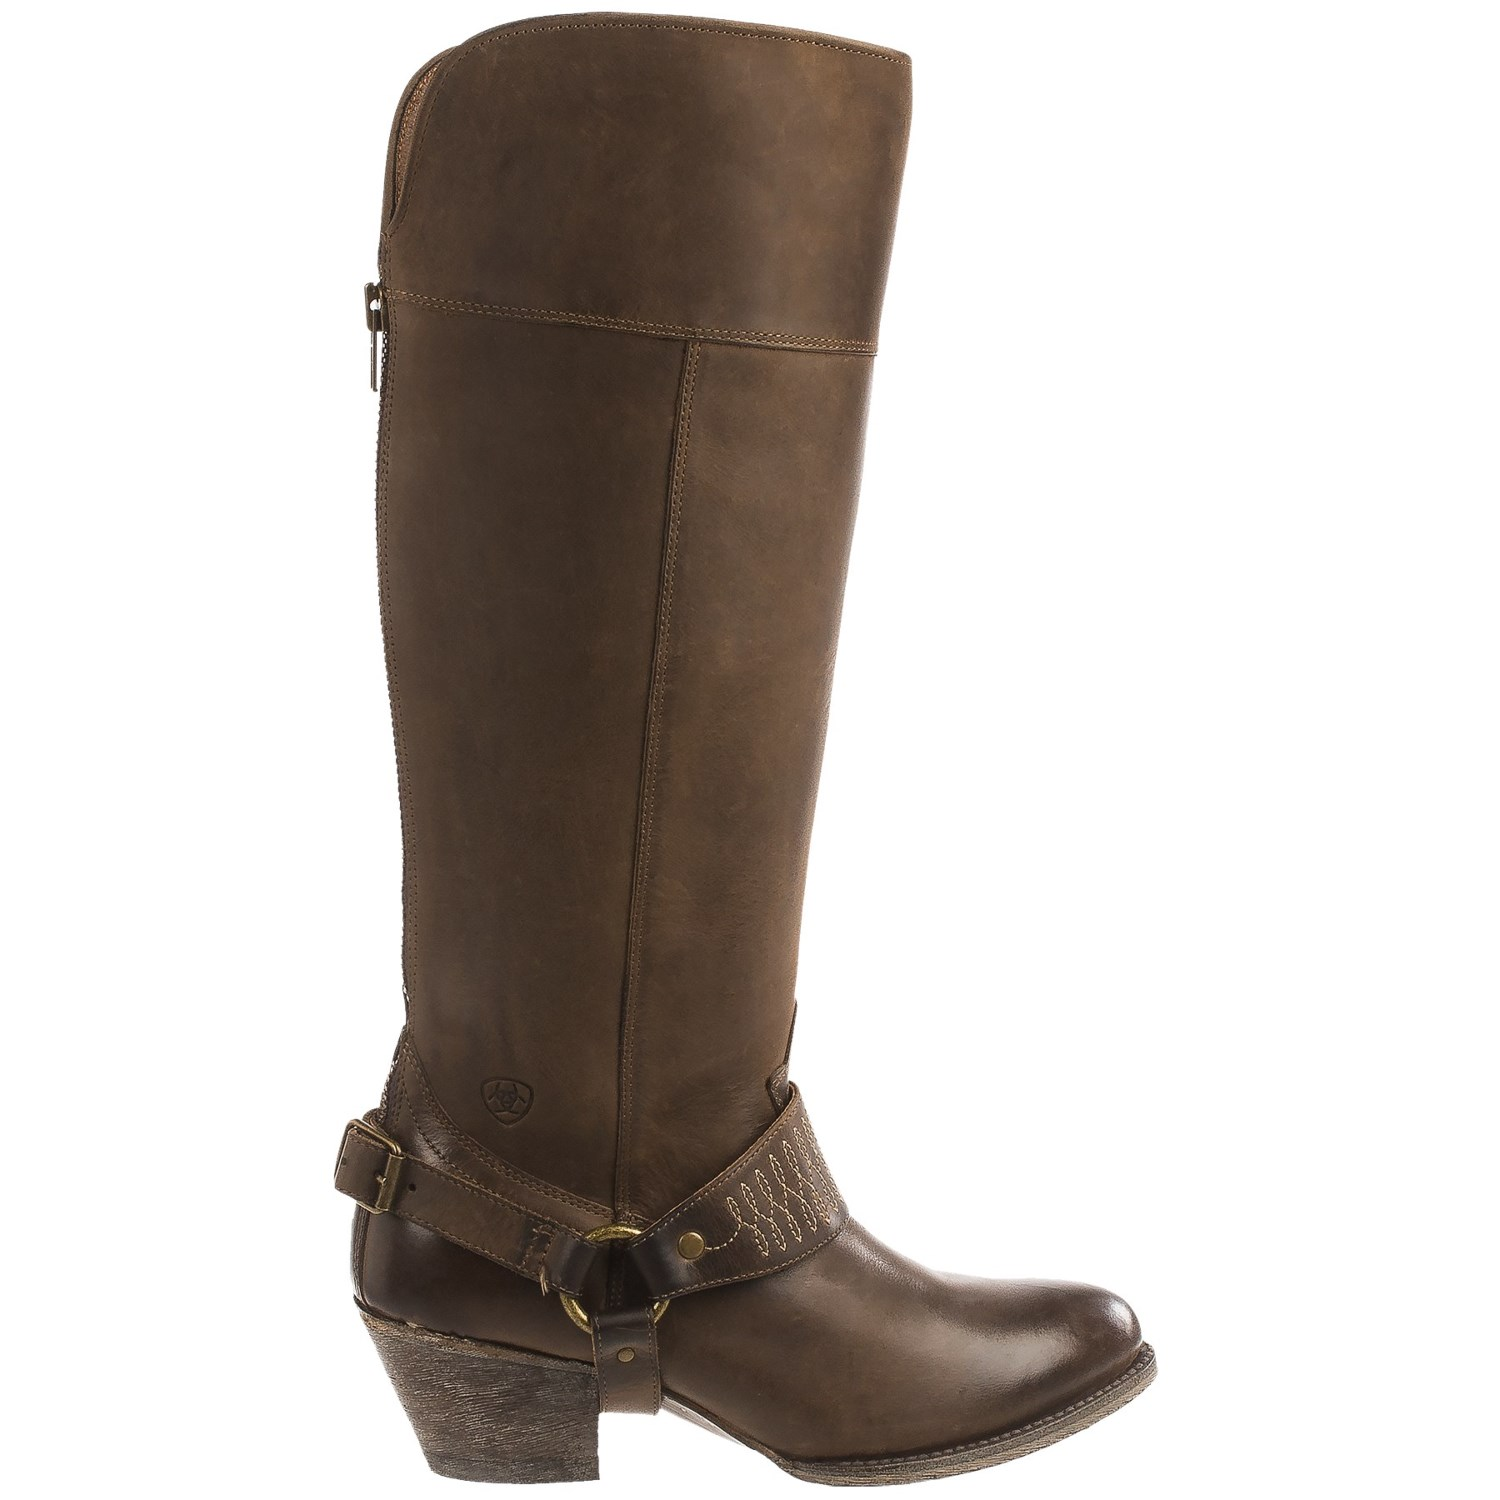 Ariat  Ariat Boots  Ariat riding apparel  HorseLoverZ